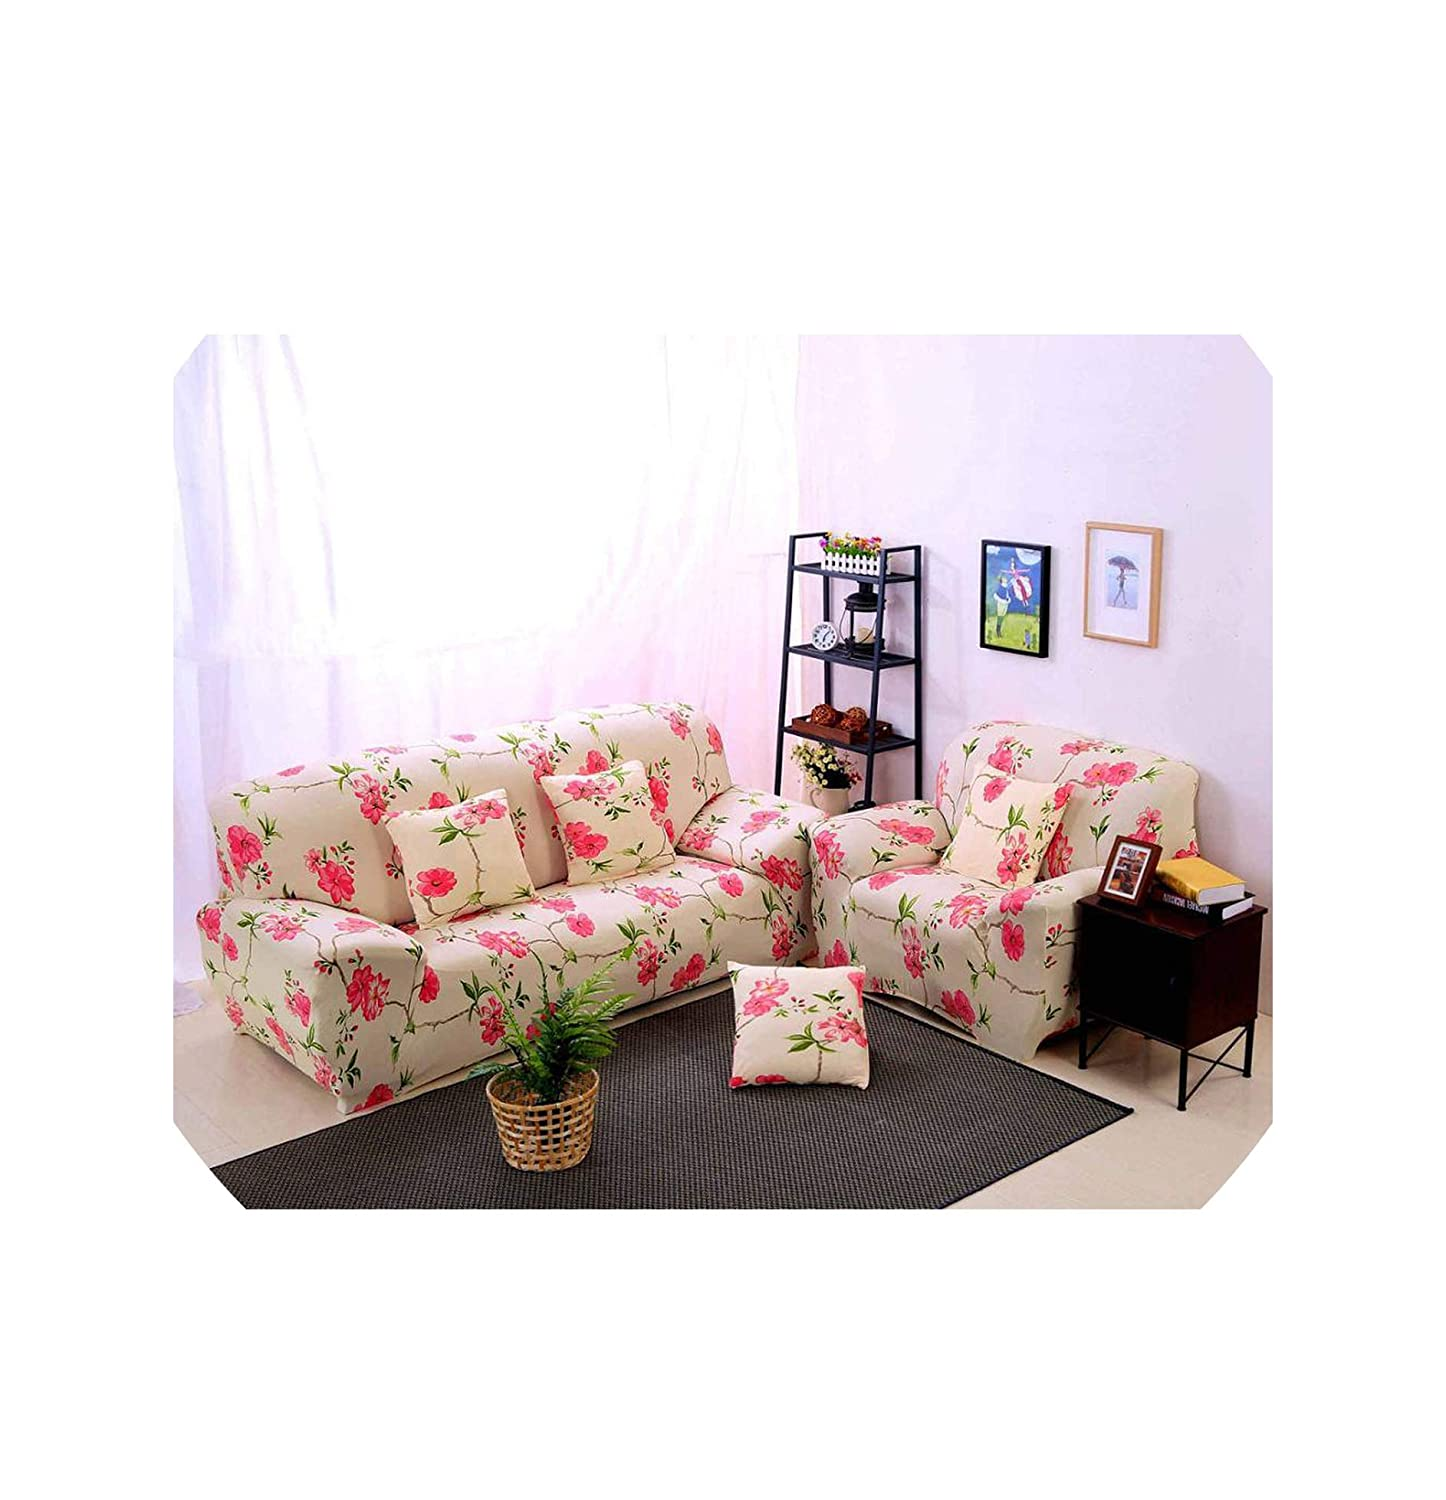 Amazing Amazon Com Slipcover Plaid Printed Stretch Niture Sofa Onthecornerstone Fun Painted Chair Ideas Images Onthecornerstoneorg